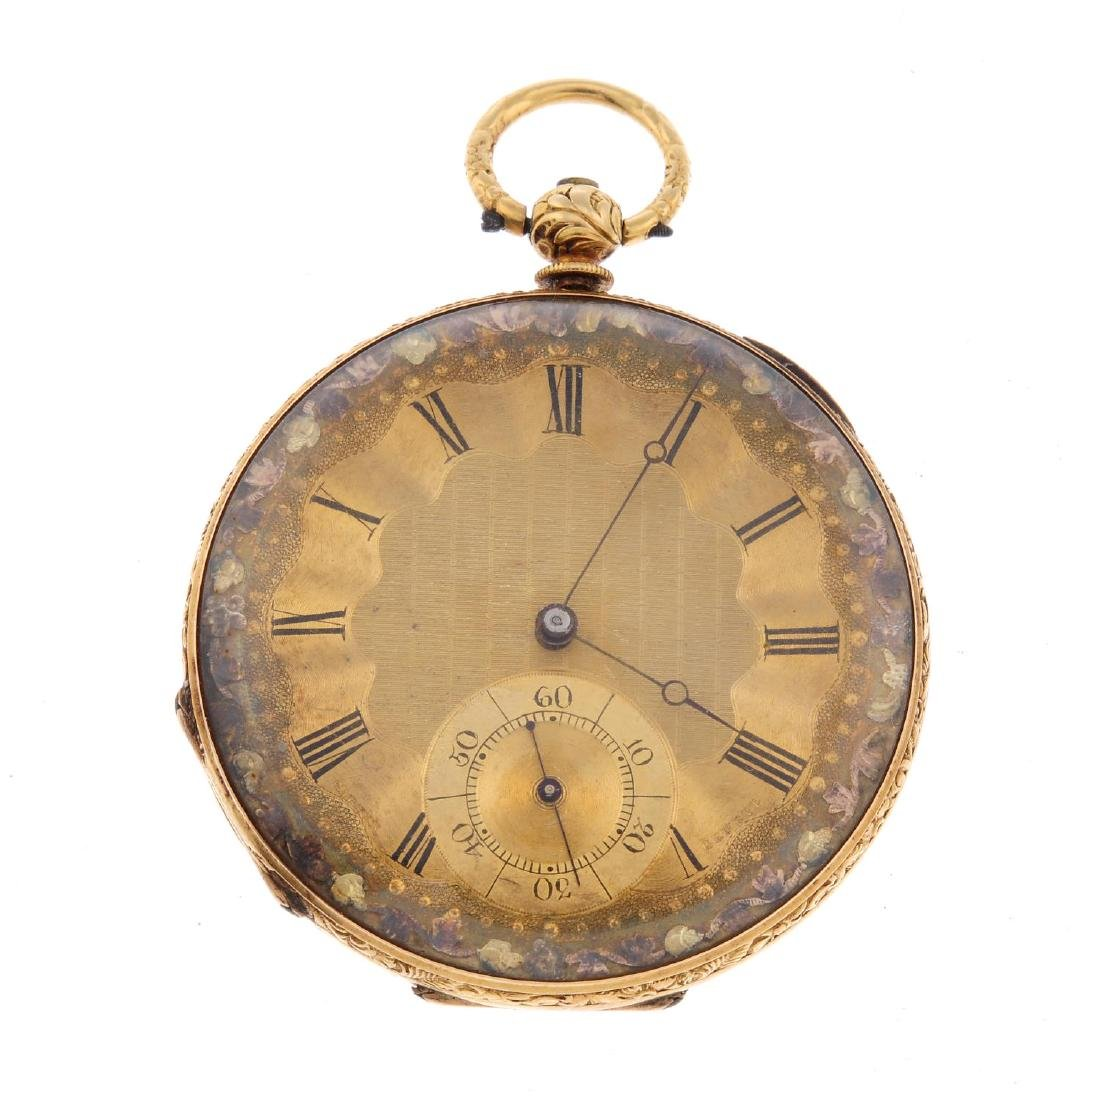 An open face pocket watch. Yellow metal case, stamped